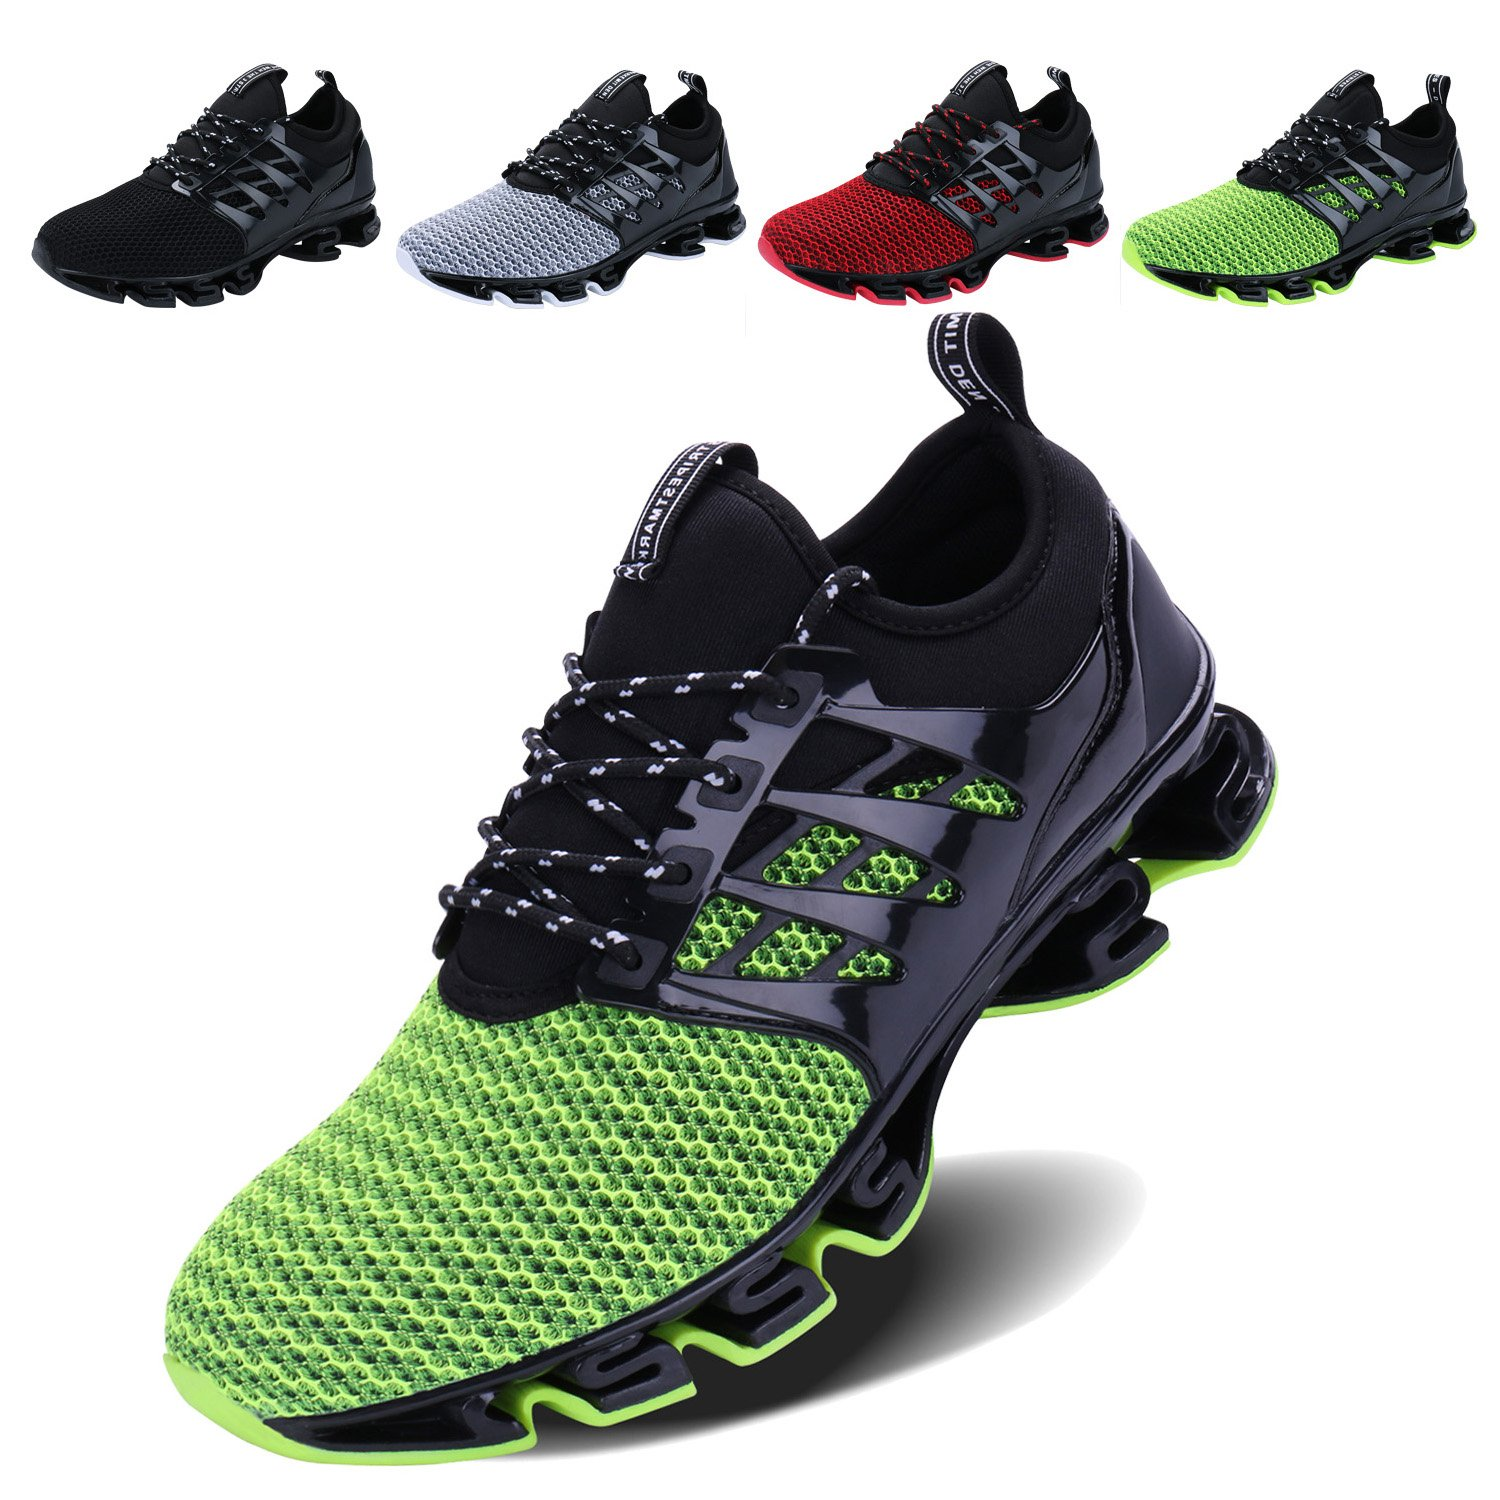 2_green 9 US VOEN Mens Casual Walking shoes Blade Outdoor Sport Sneakers Mesh Breathable Fashion shoes